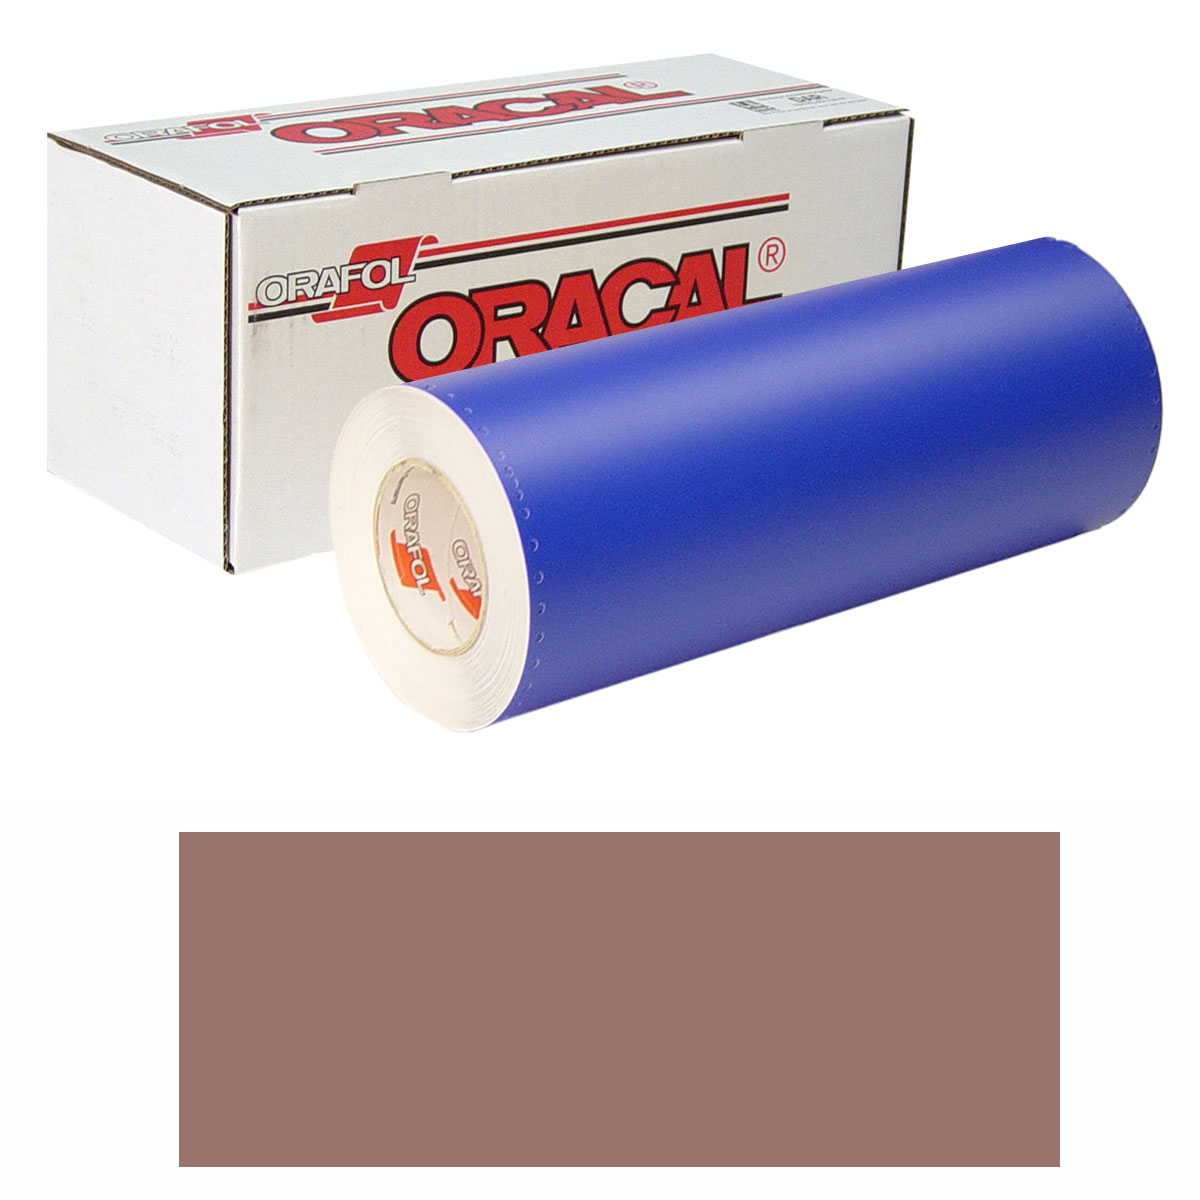 ORACAL 8300 Unp 24in X 10yd 079 Reddish Br